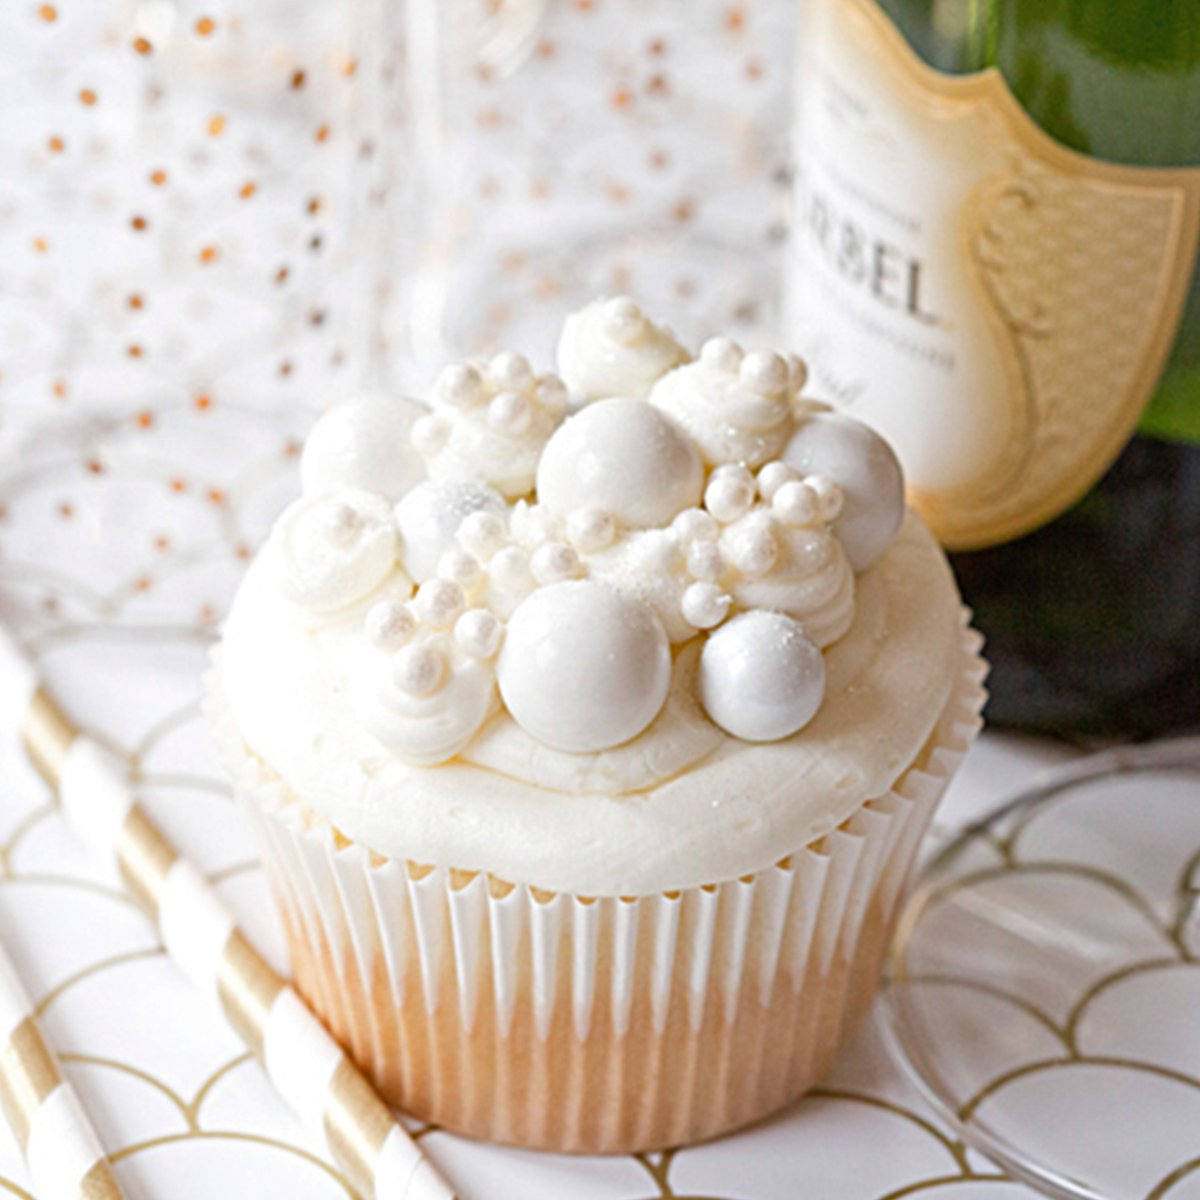 Because YES. Bubbly Champagne Cupcakes: https://t.co/4gk3uG8Xnj https://t.co/RaHi9ncVG1